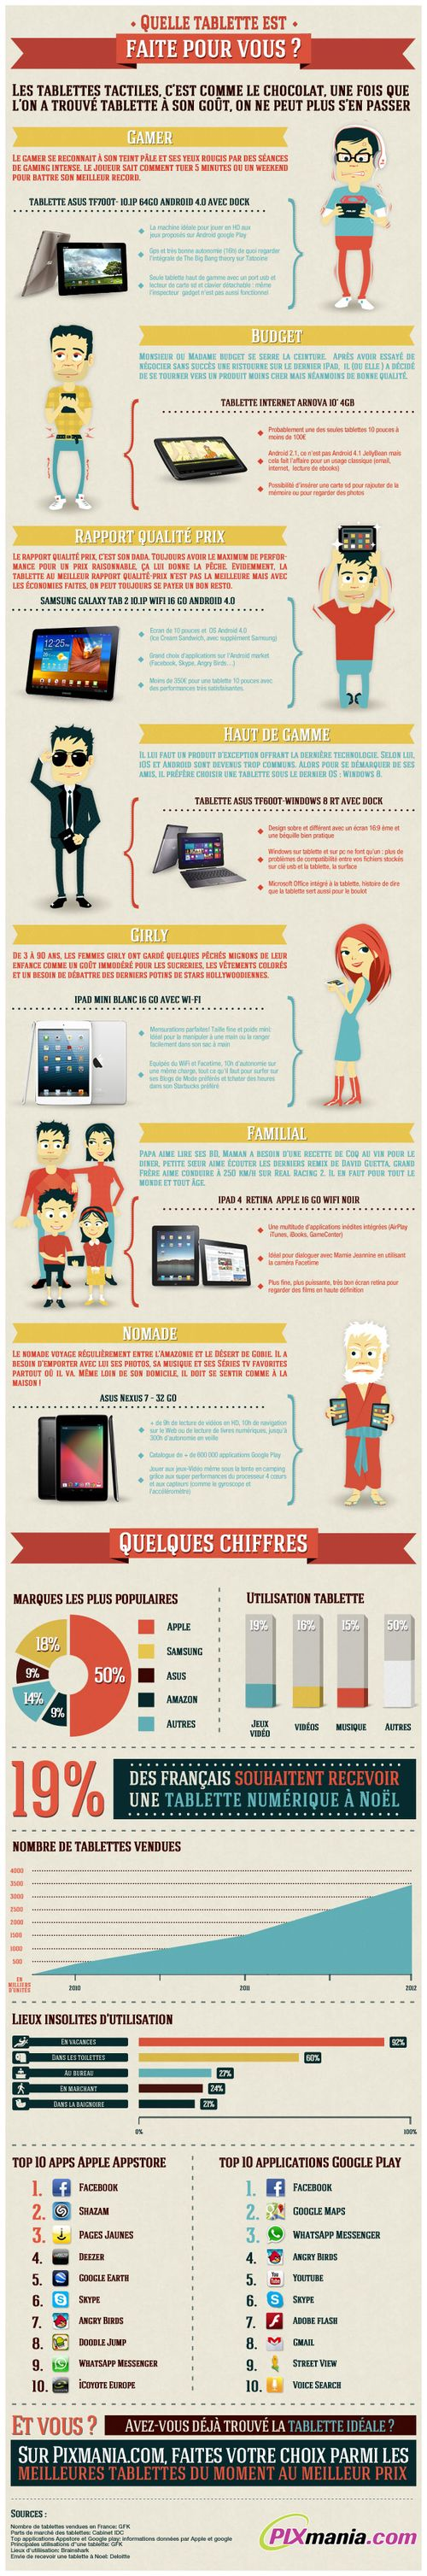 Infographie-tablette-tactile-2012.jpg,q9d7bd4.pagespeed.ce.YYw7ykRw5I